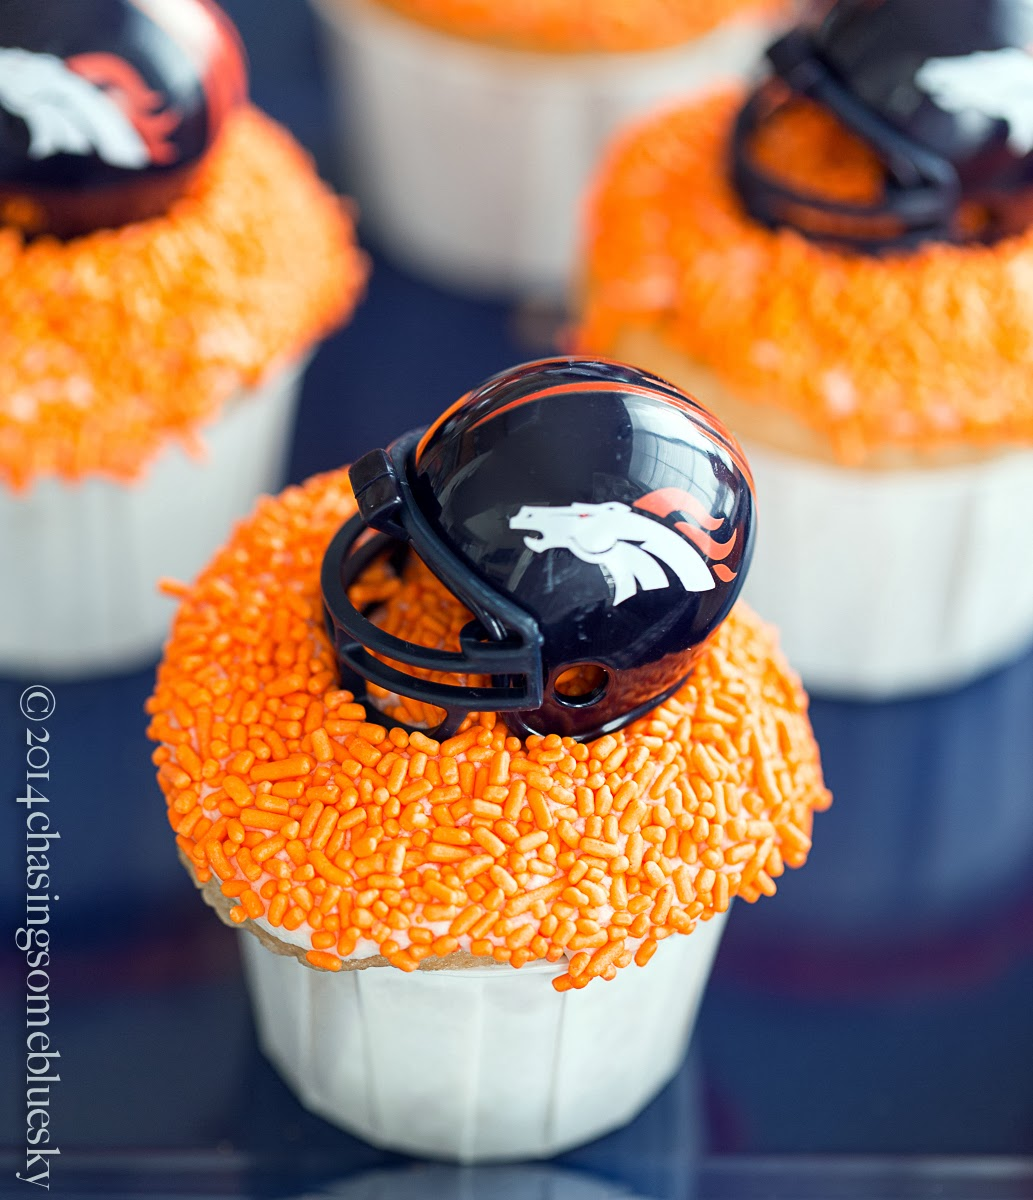 Denver Broncos Cupcakes from Chasing Some Blue Sky